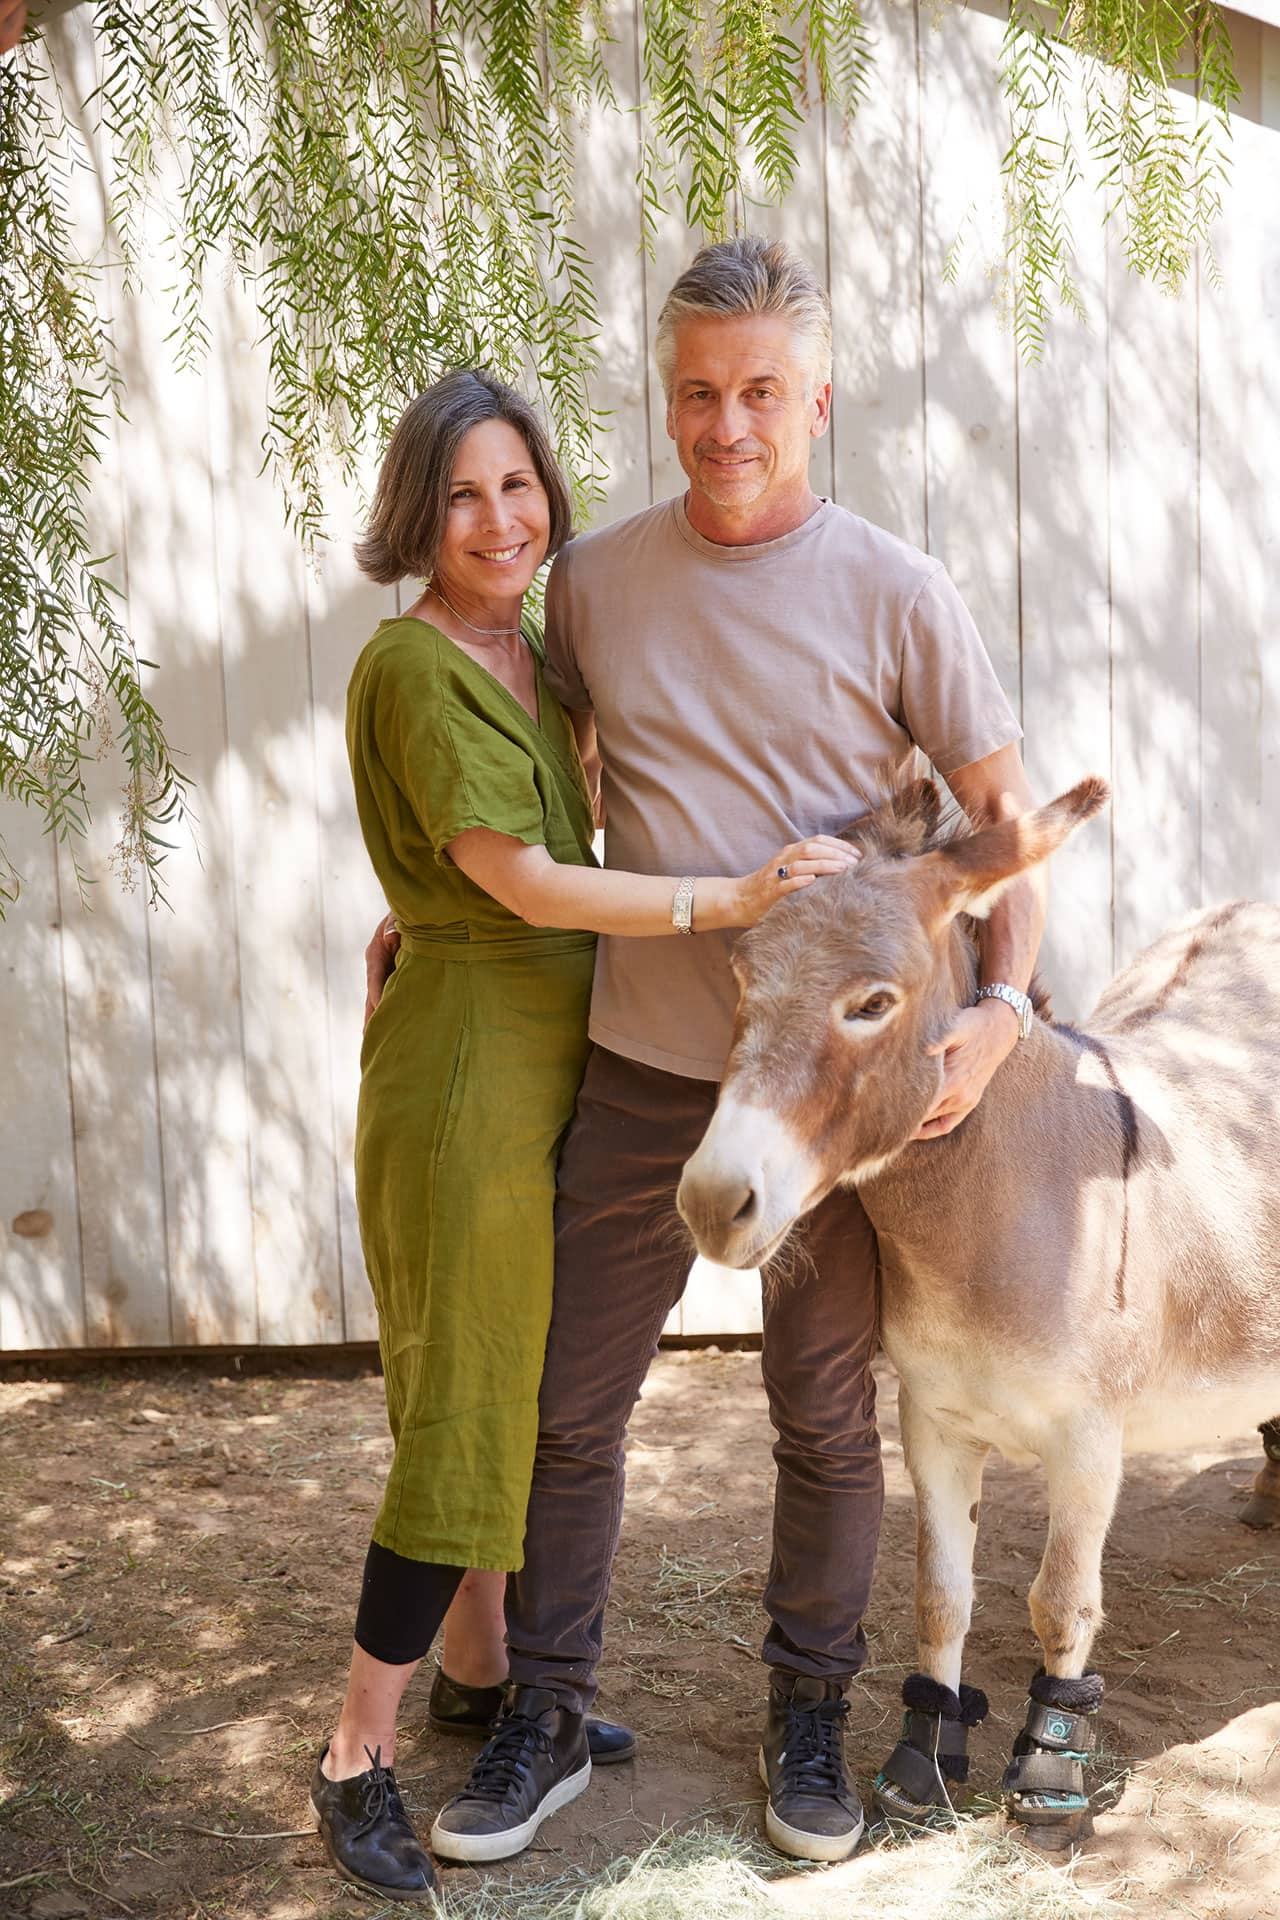 brooke and steve giannetti with one of their donkeys